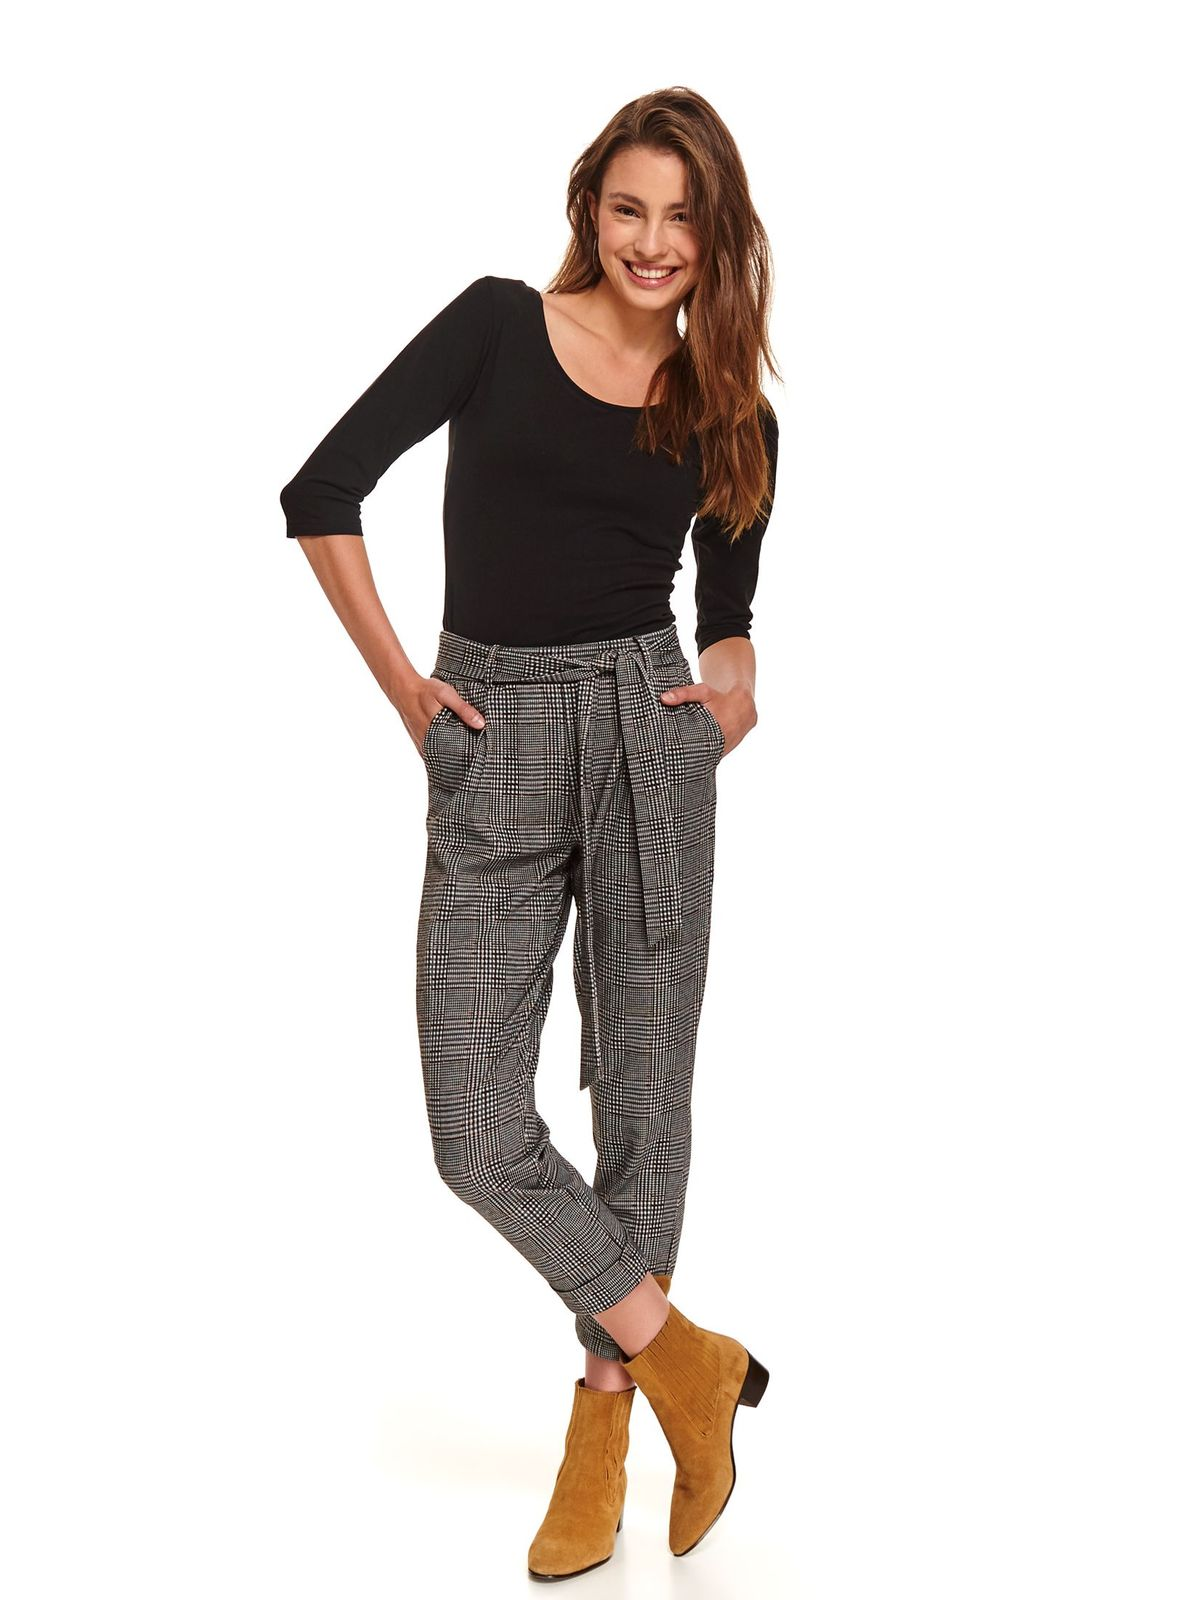 Black trousers casual with medium waist slightly elastic fabric with chequers accessorized with tied waistband